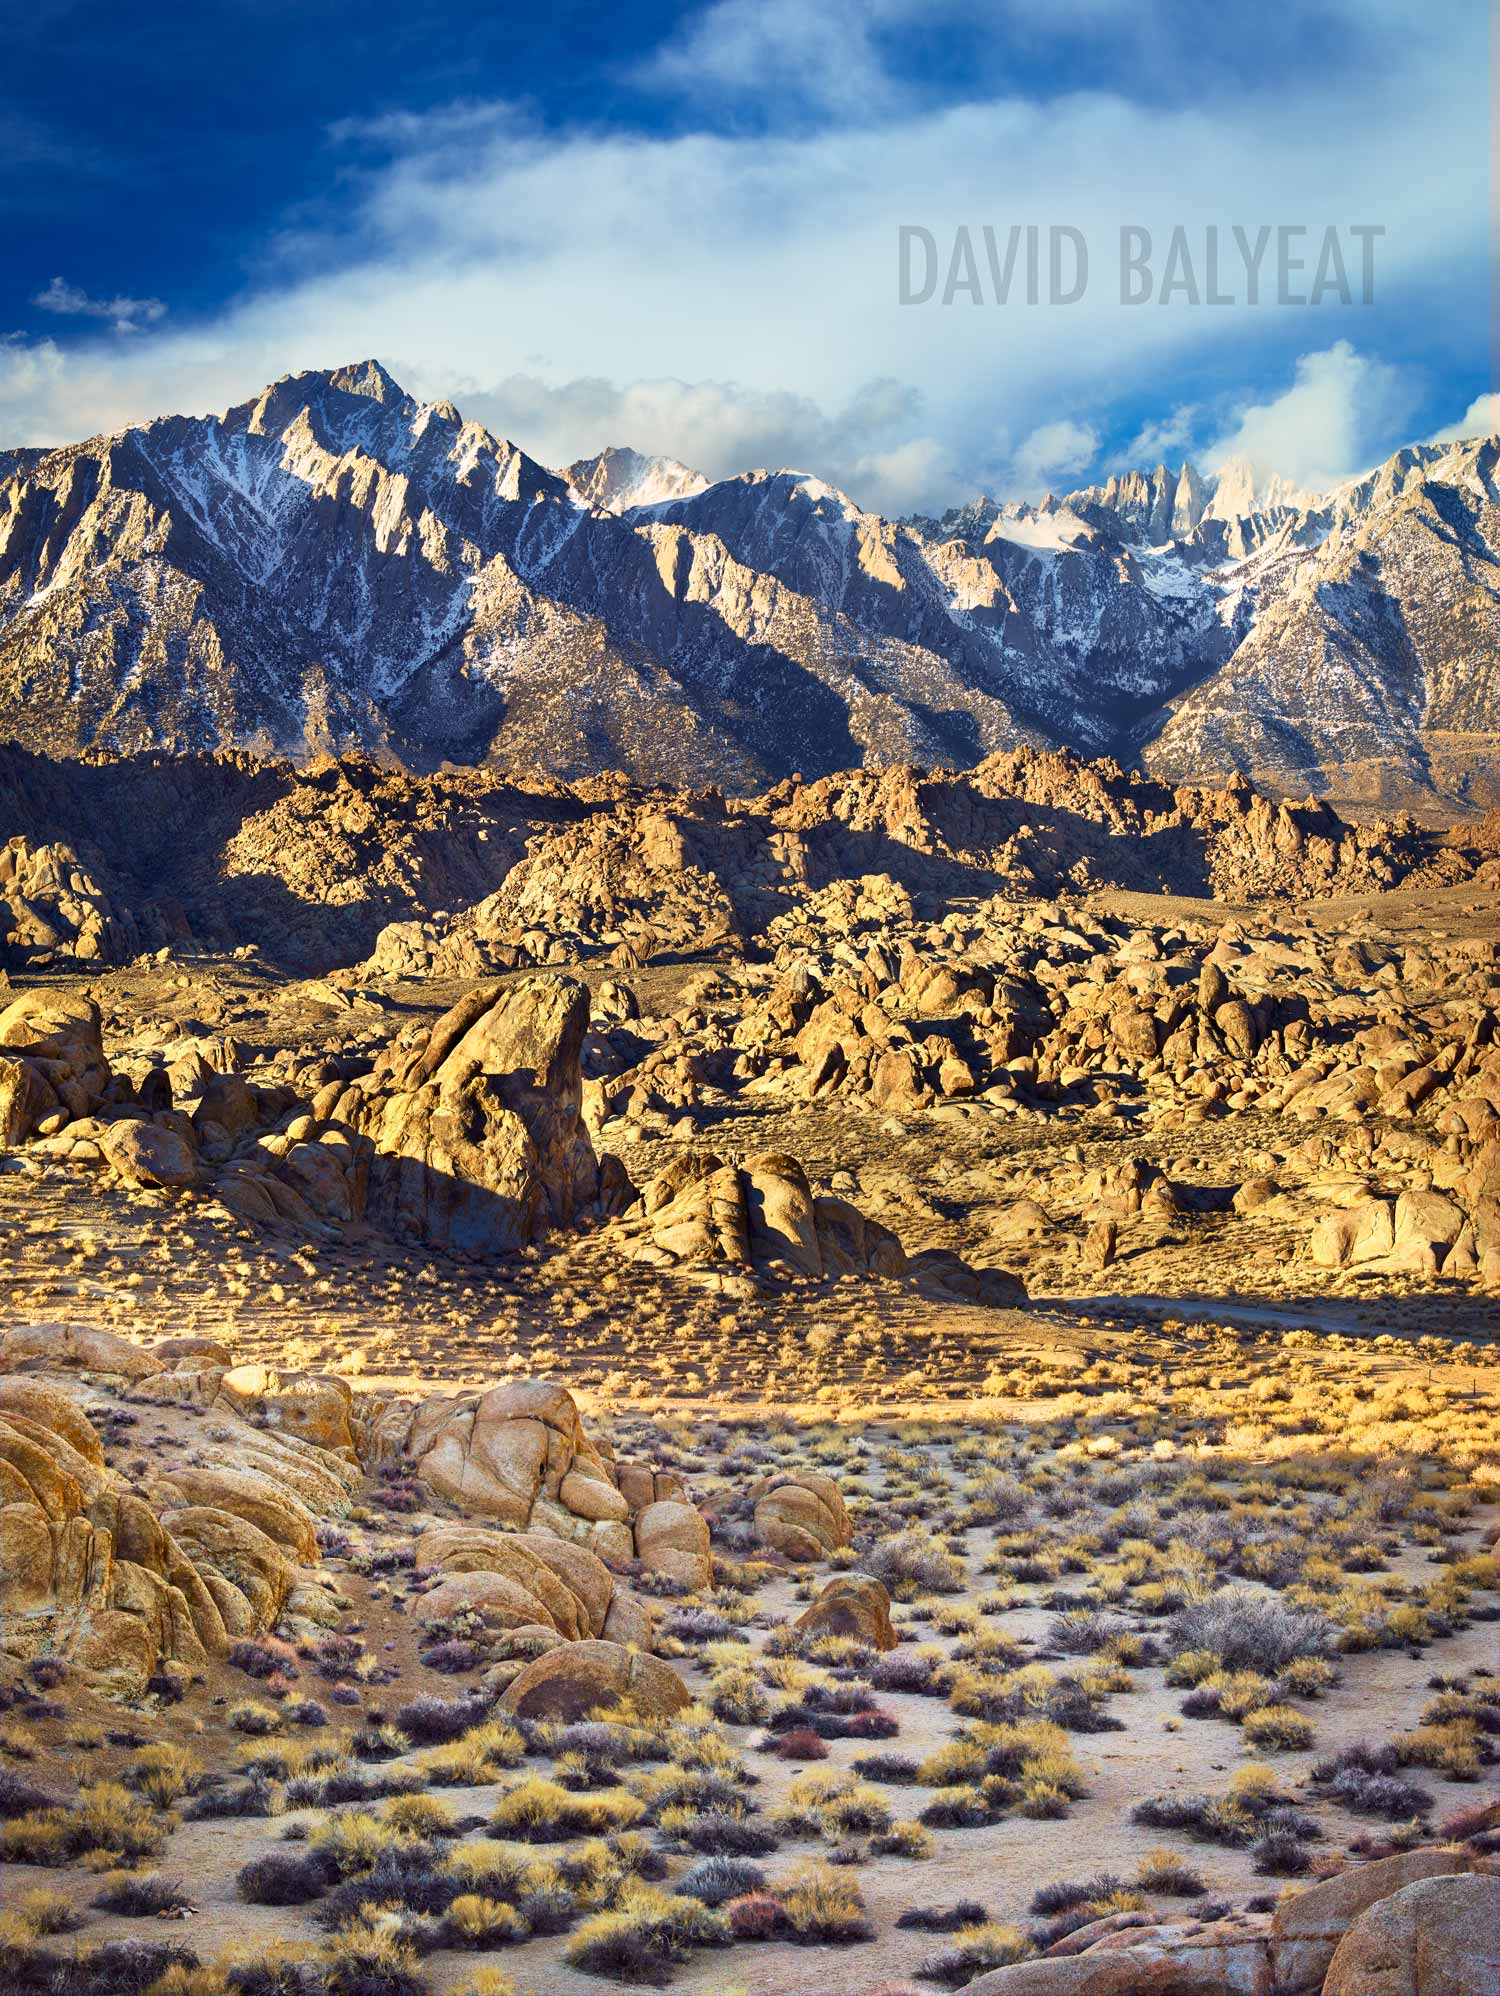 awareness in Alabama Hills near Lone Pine, California - Landscape Photography